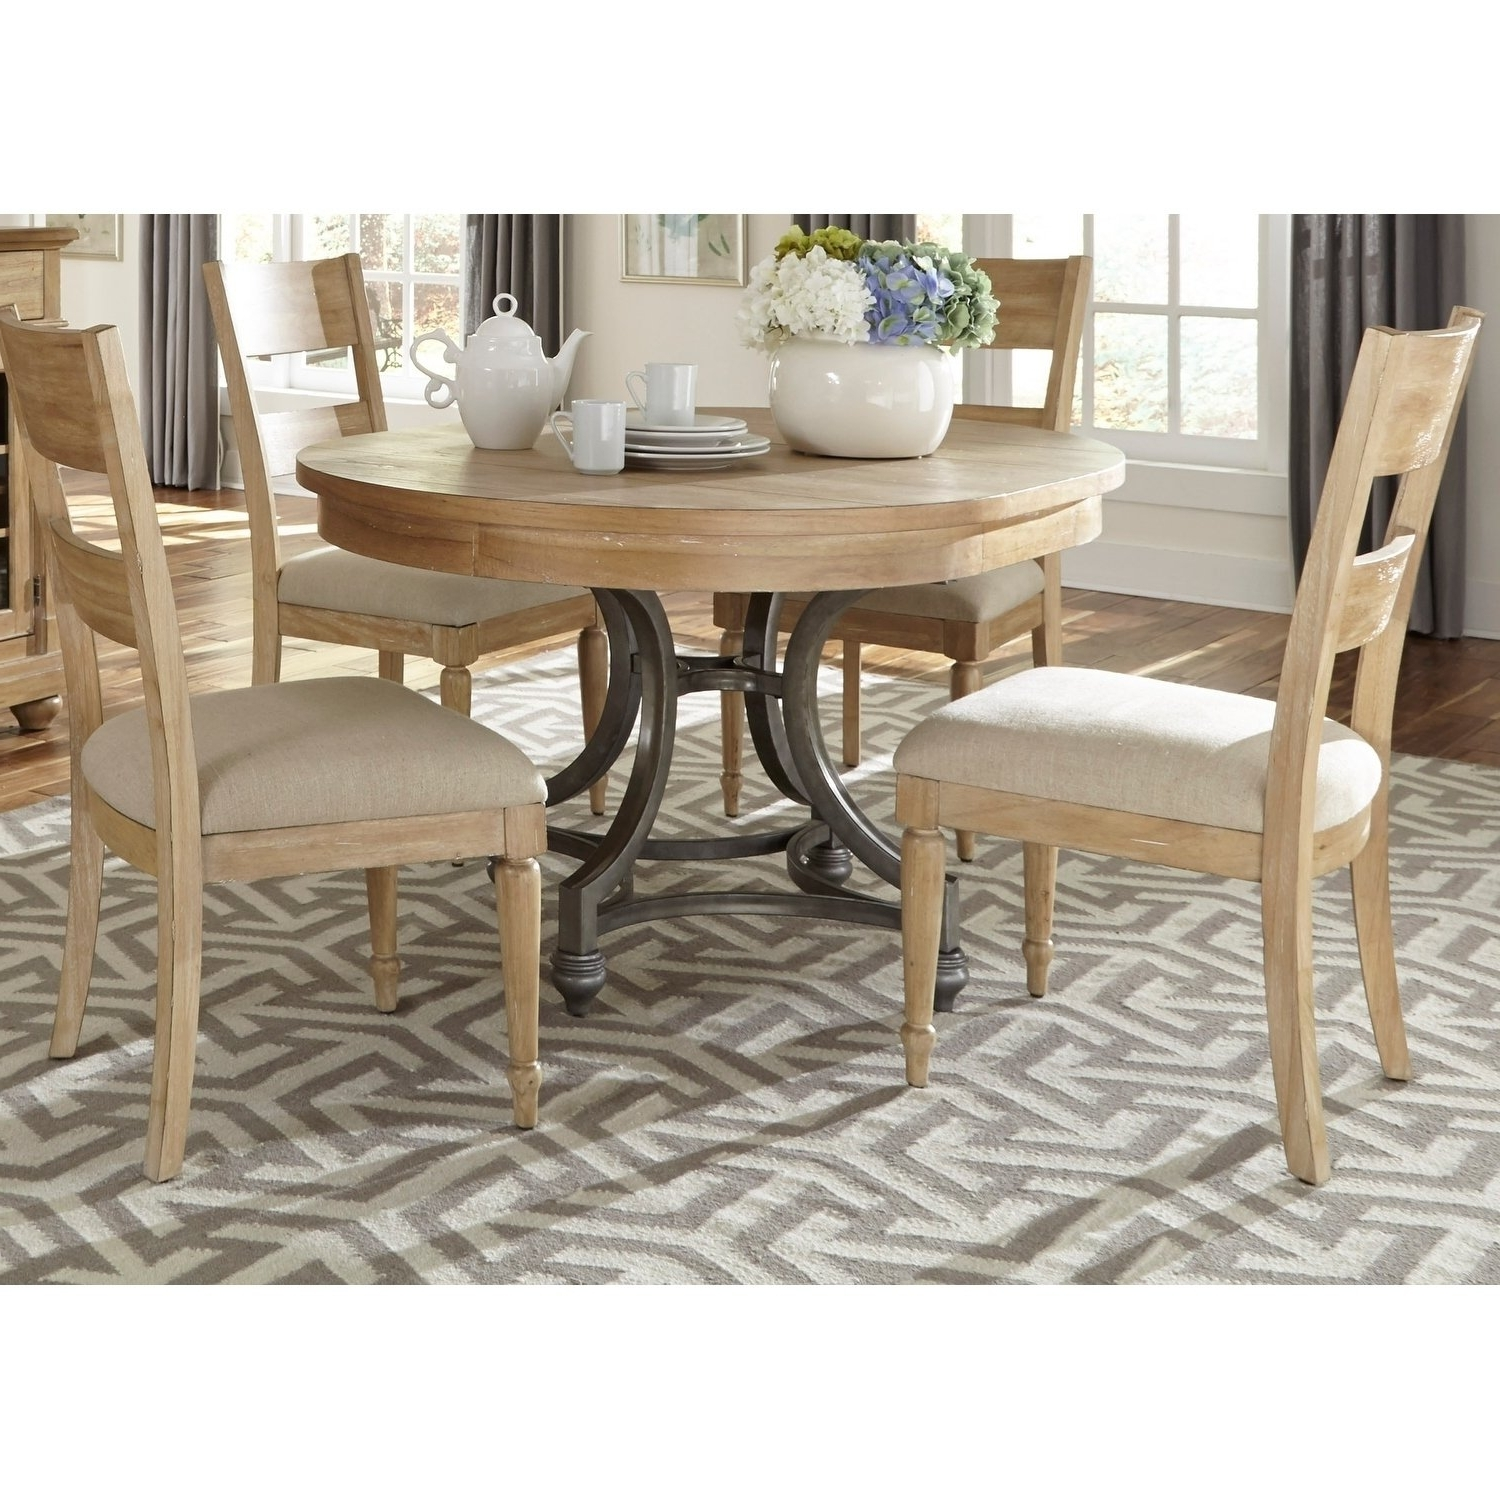 Jaxon 5 Piece Extension Counter Sets With Wood Stools Inside Popular Shop Harbor View Sand 5 Piece Round Table Set – On Sale – Free (View 10 of 25)